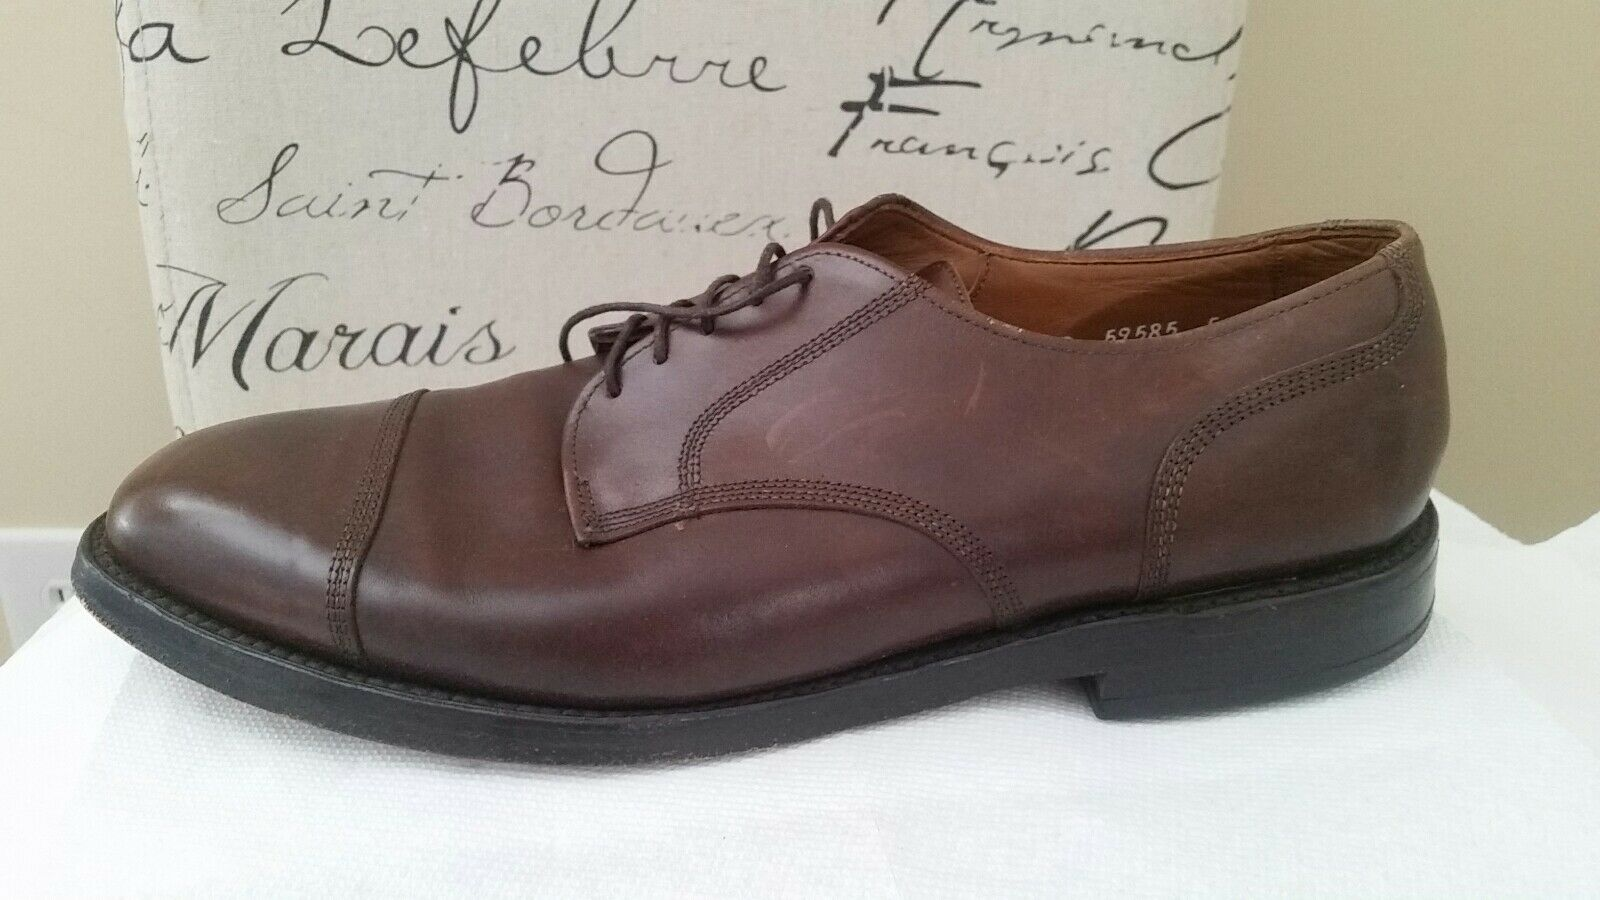 Allen Edmonds Uomo Dress Shoes Size 10.5D Brown Pelle Oxfords Great Condition